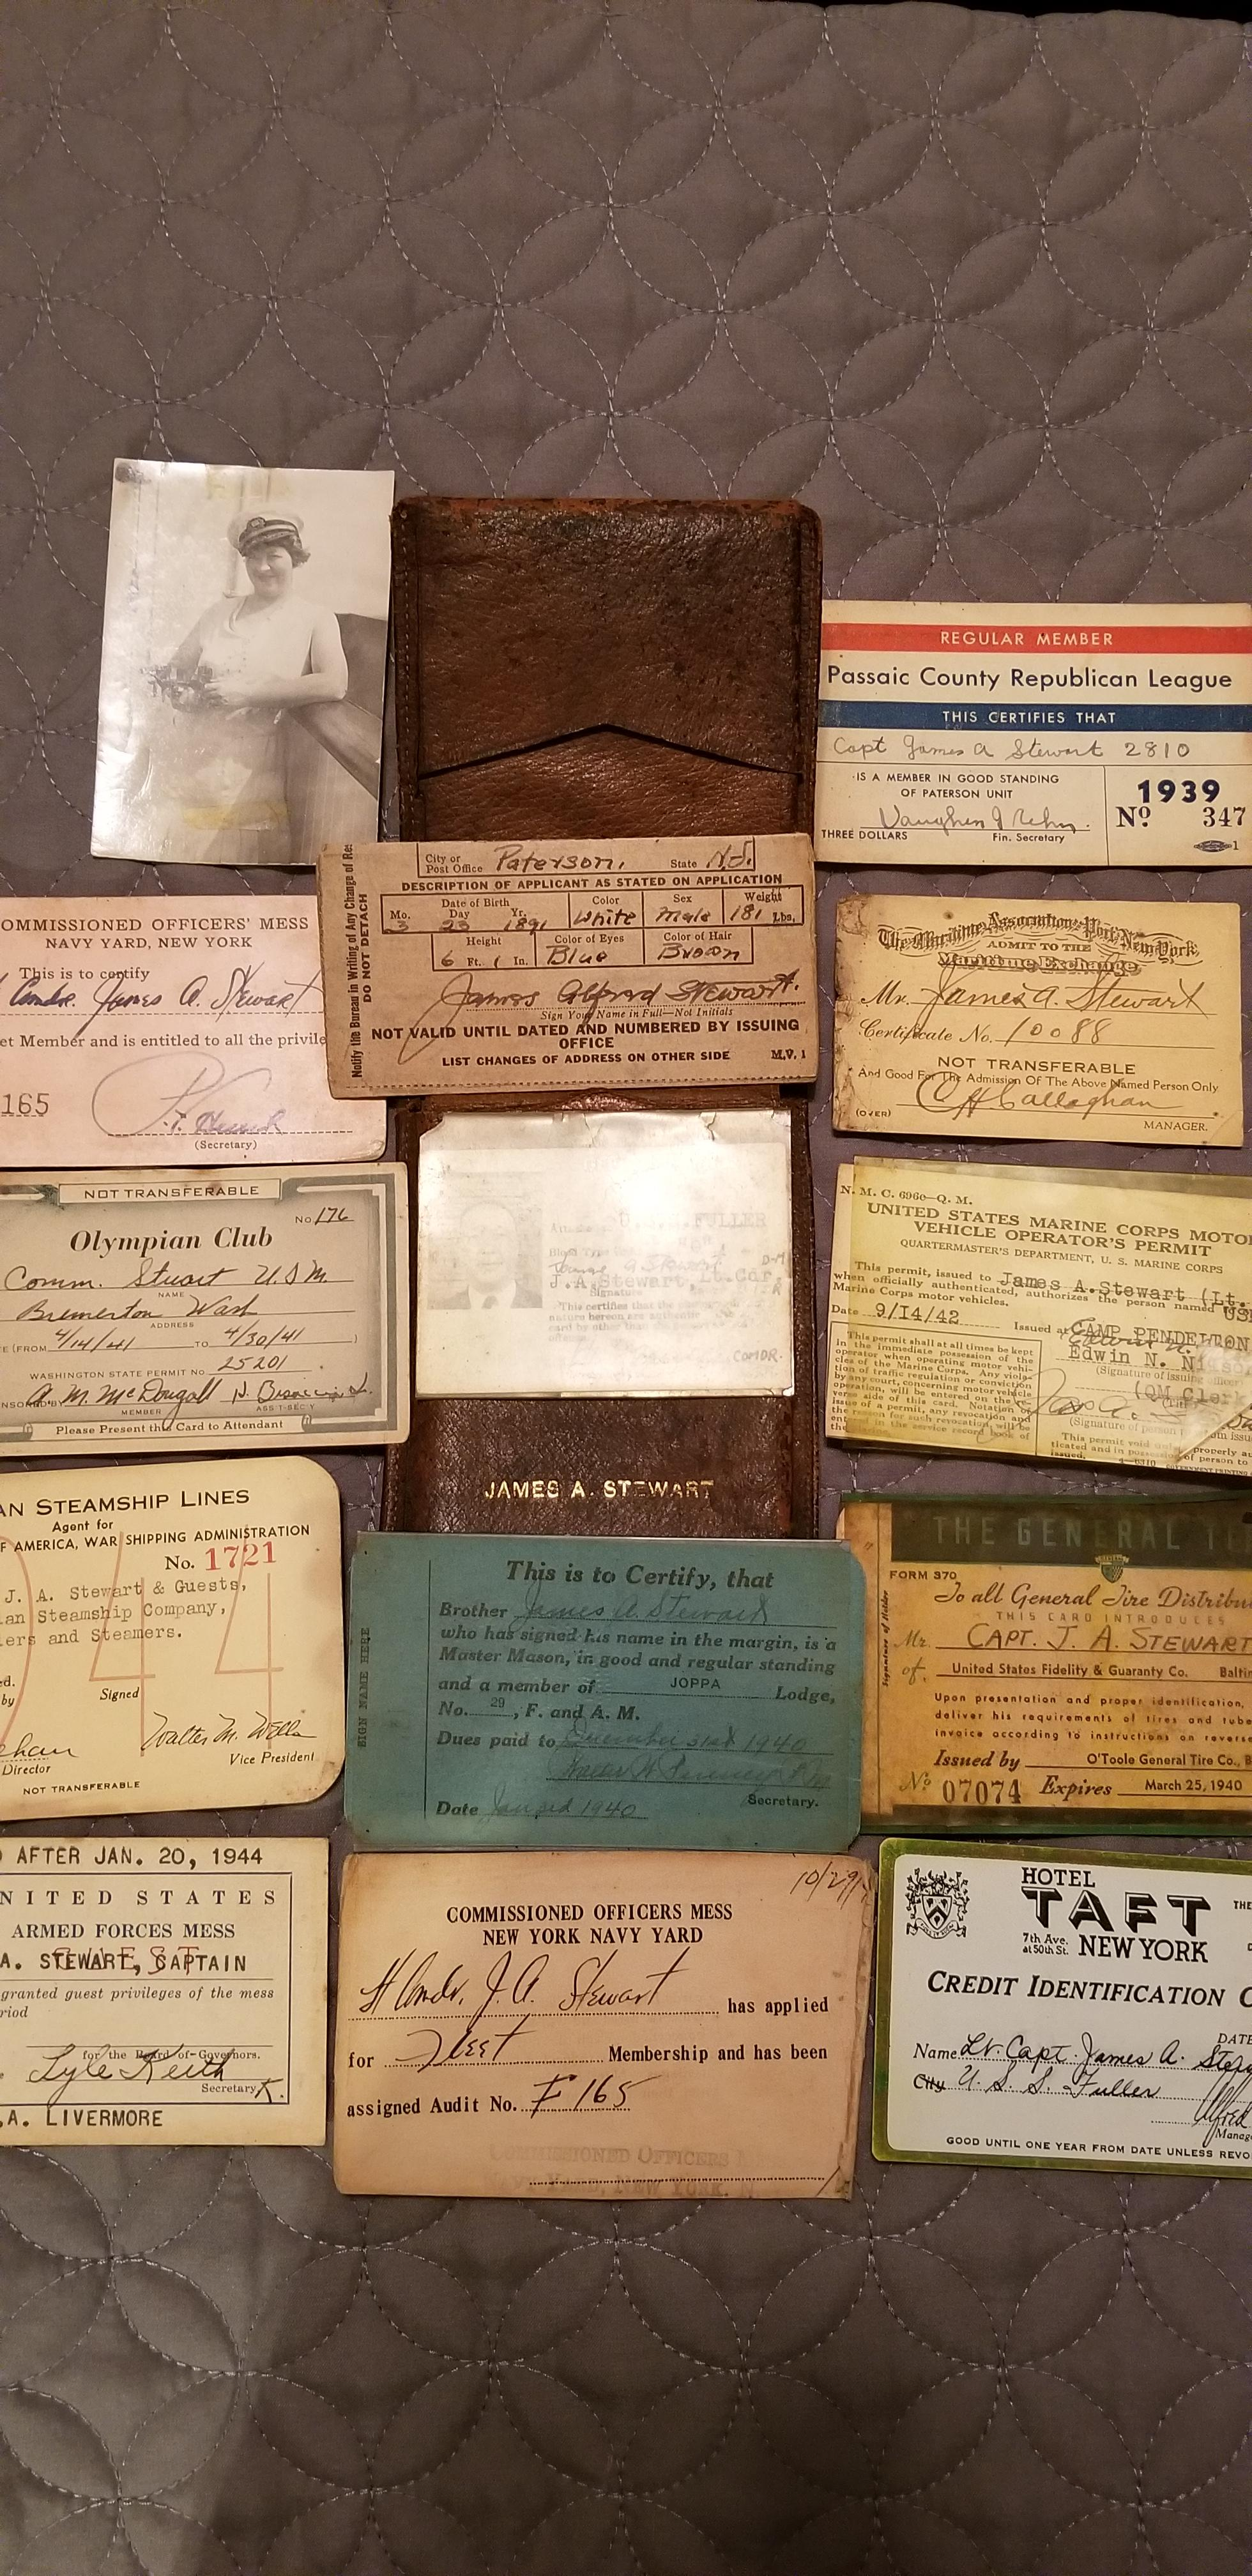 My Great Grandfather's wallet and its contents, as it was the day he was killed in WWII.